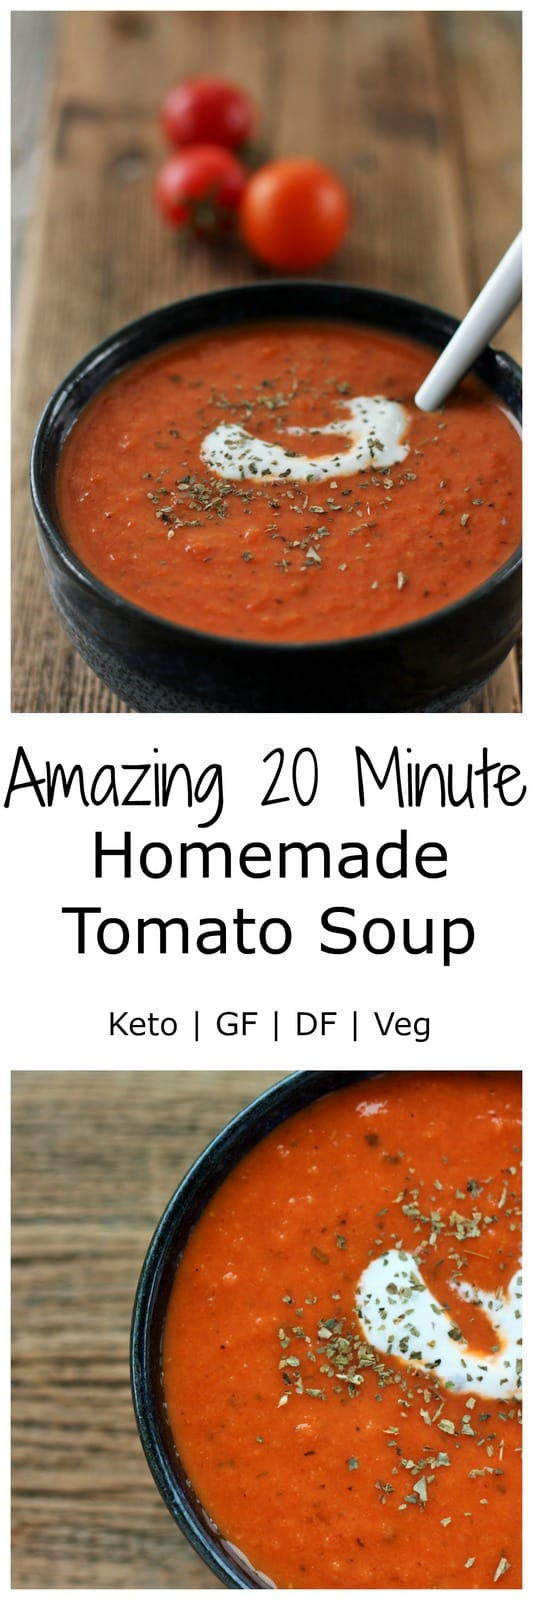 Homemade tomato soup full of delicious flavors and creamy goodness. A few simple ingredients create an amazing and tasty bowl of comfort and joy.